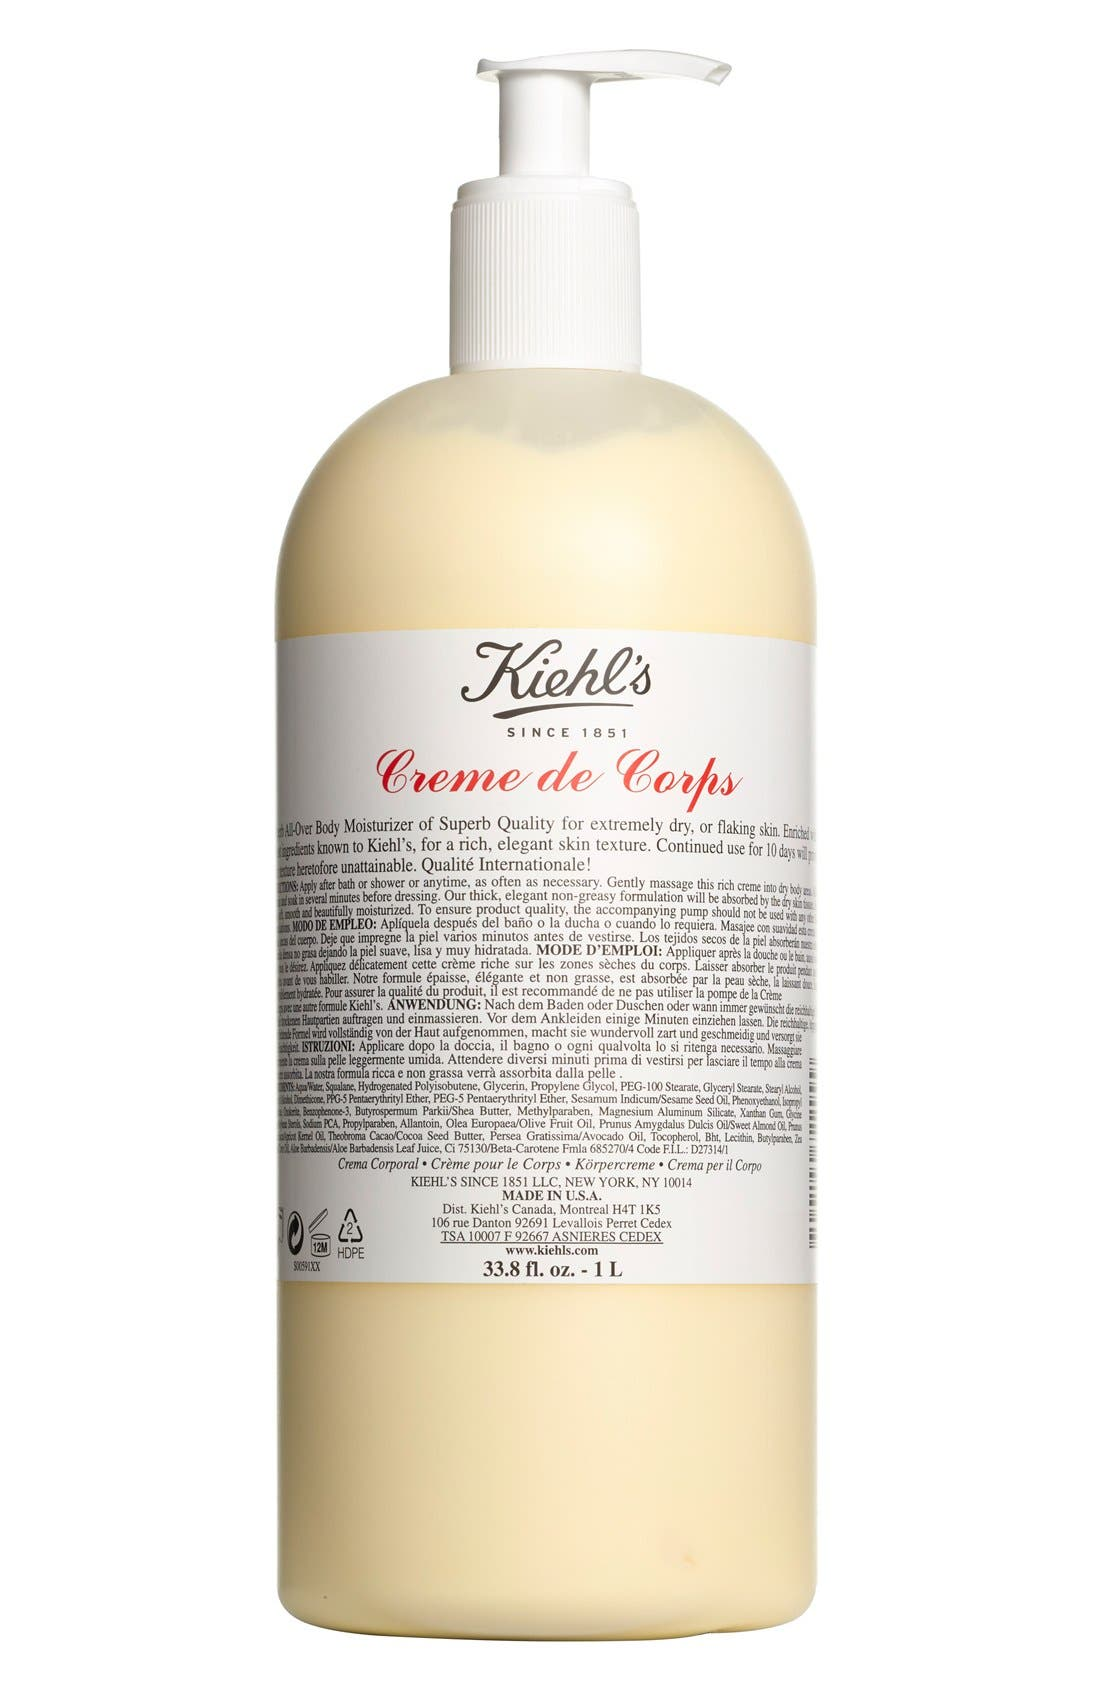 Kiehl's Since 1851 Jumbo Creme de Corps with Pump ($96 Value)